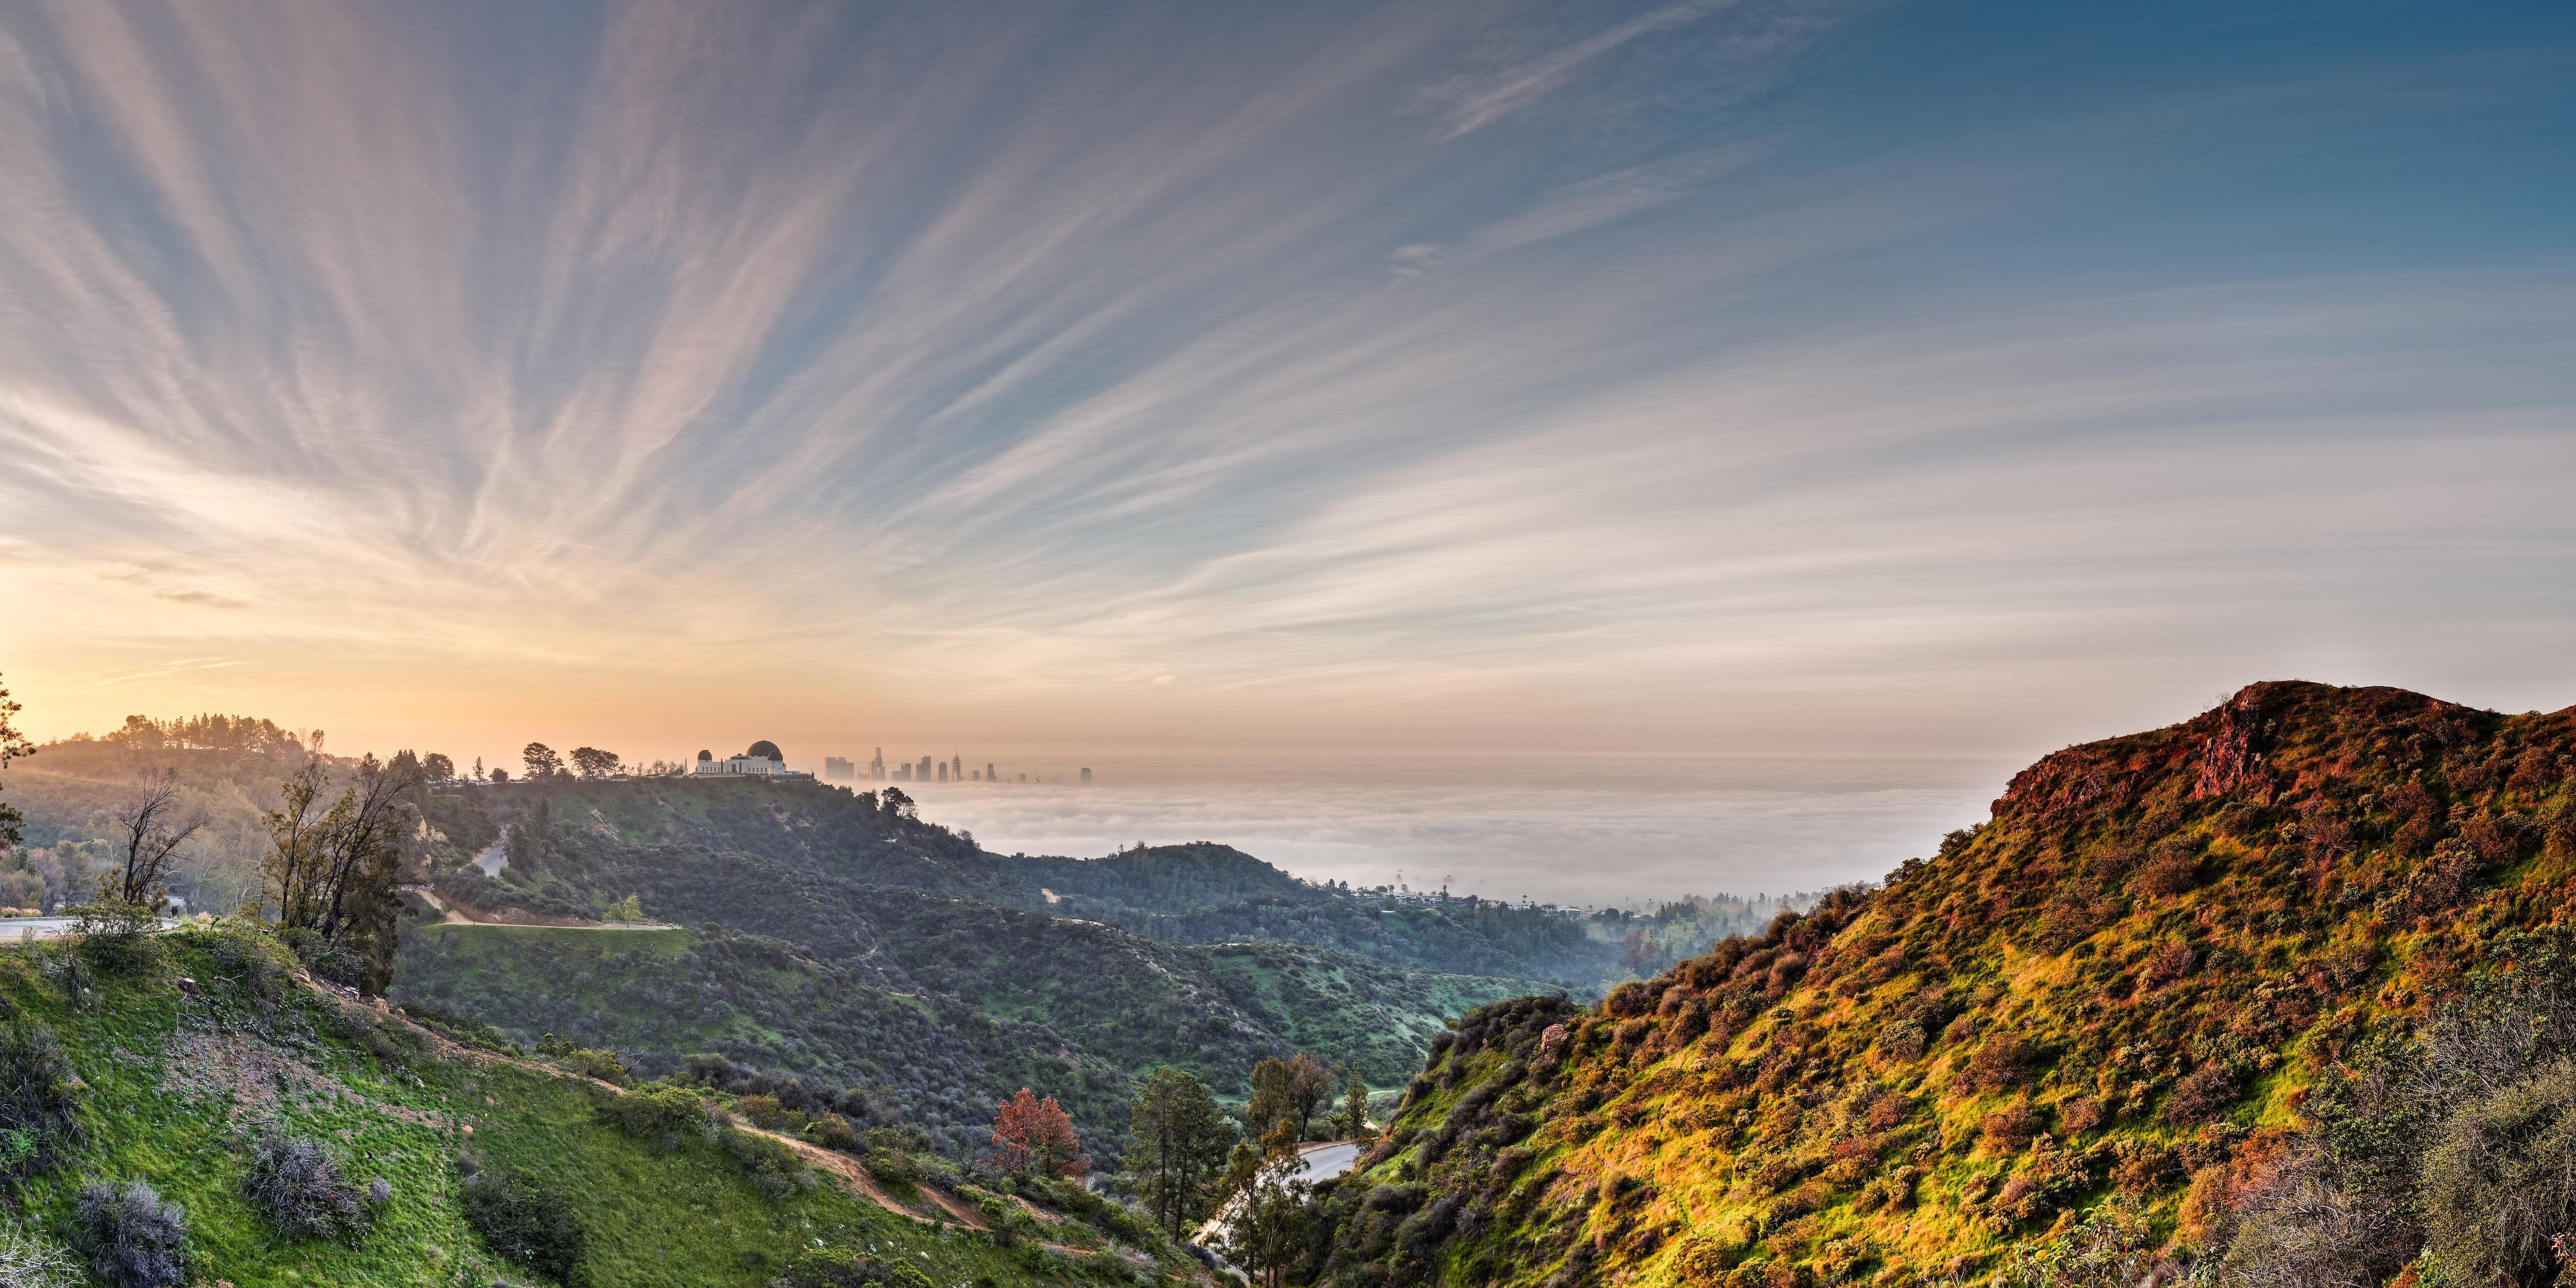 Where to Find the Best Views in Los Angeles